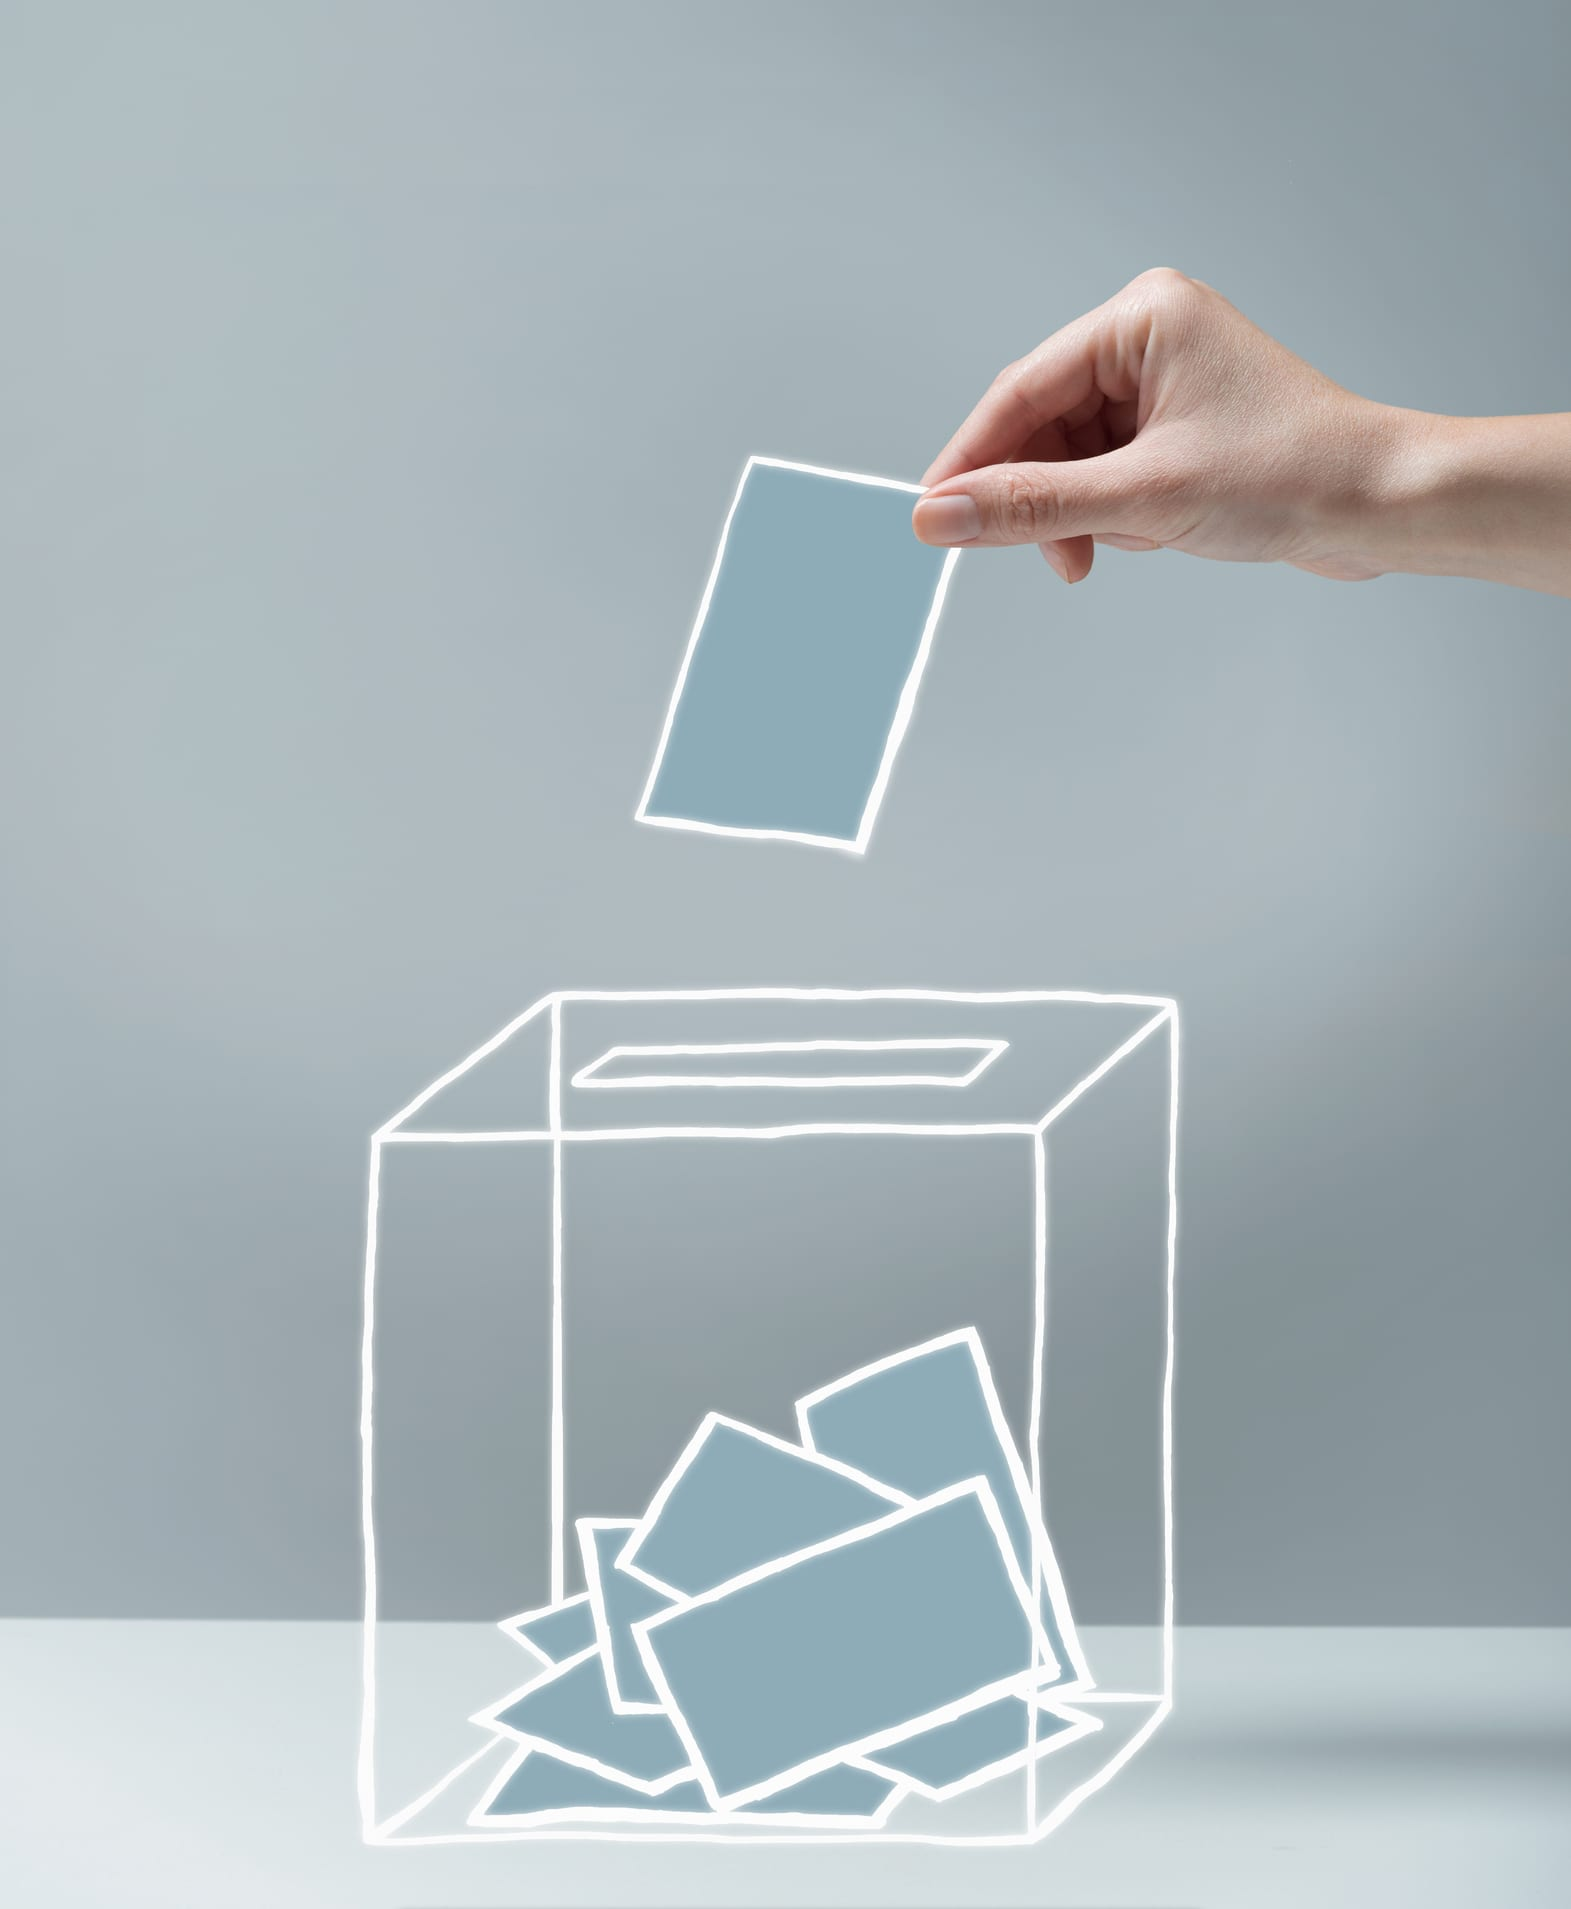 Young woman's hand about to place illustrated ballot into ballot box